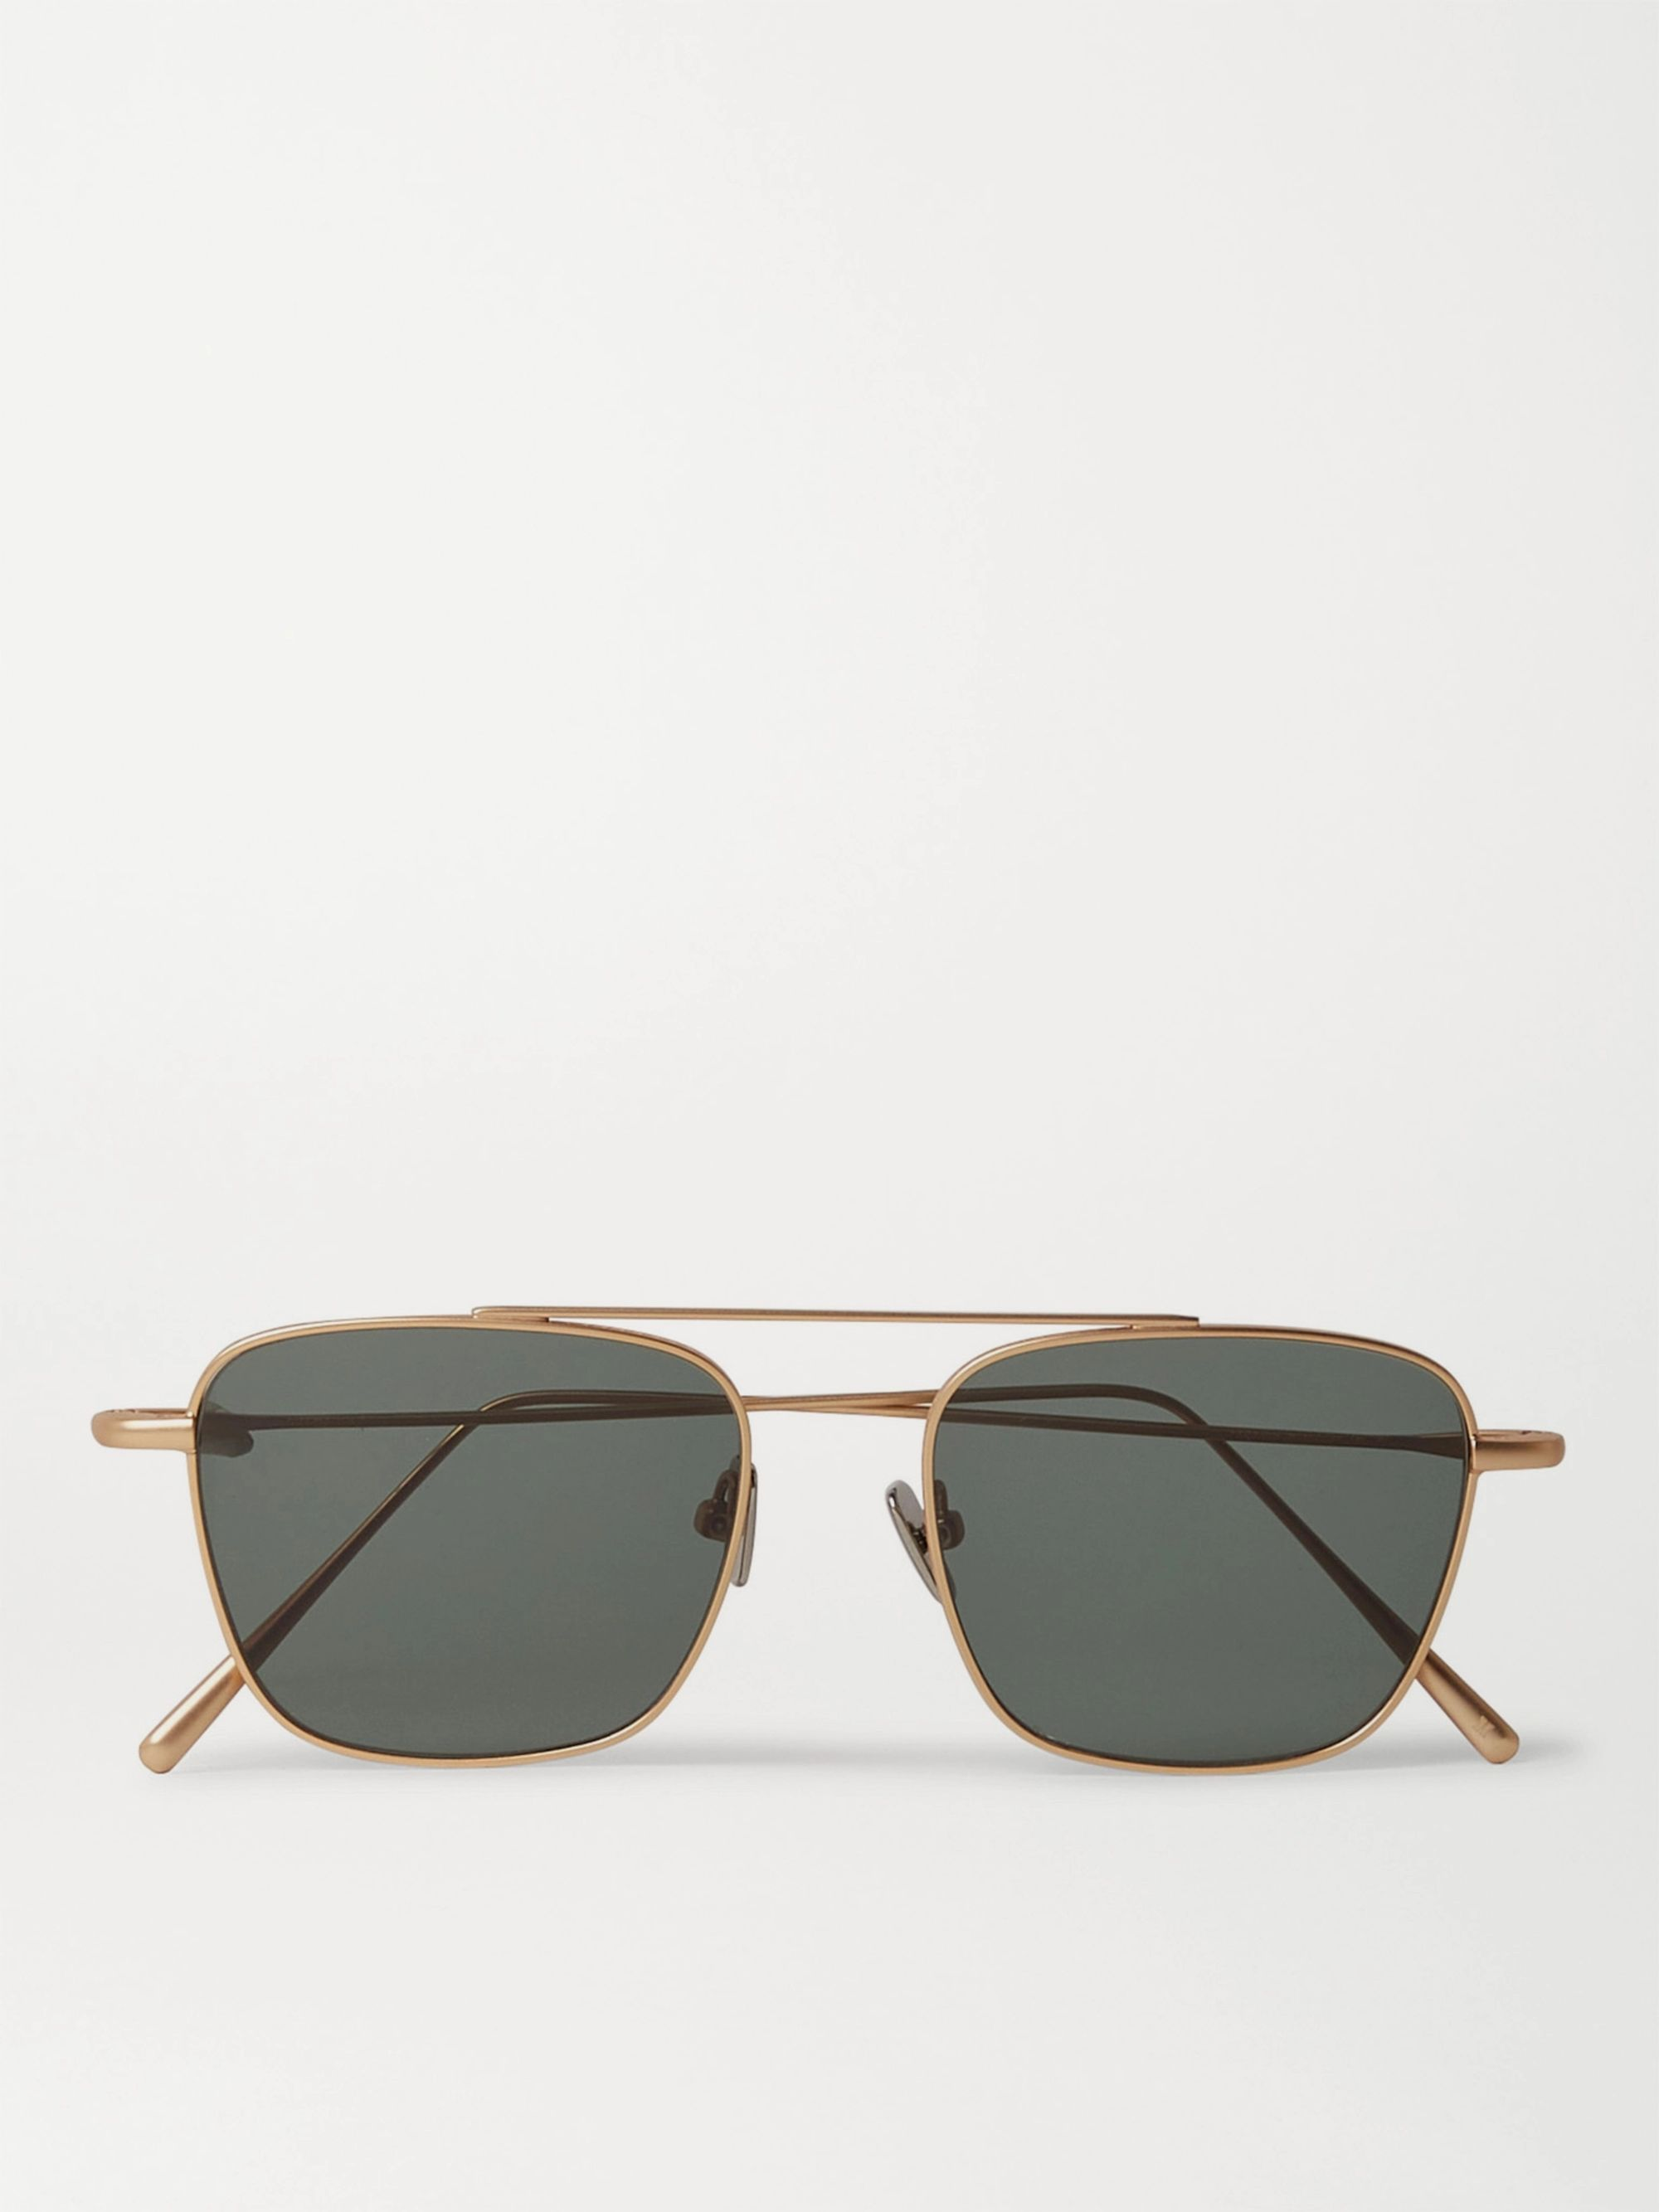 CUBITTS Collier Square-Frame Gold-Tone Sunglasses